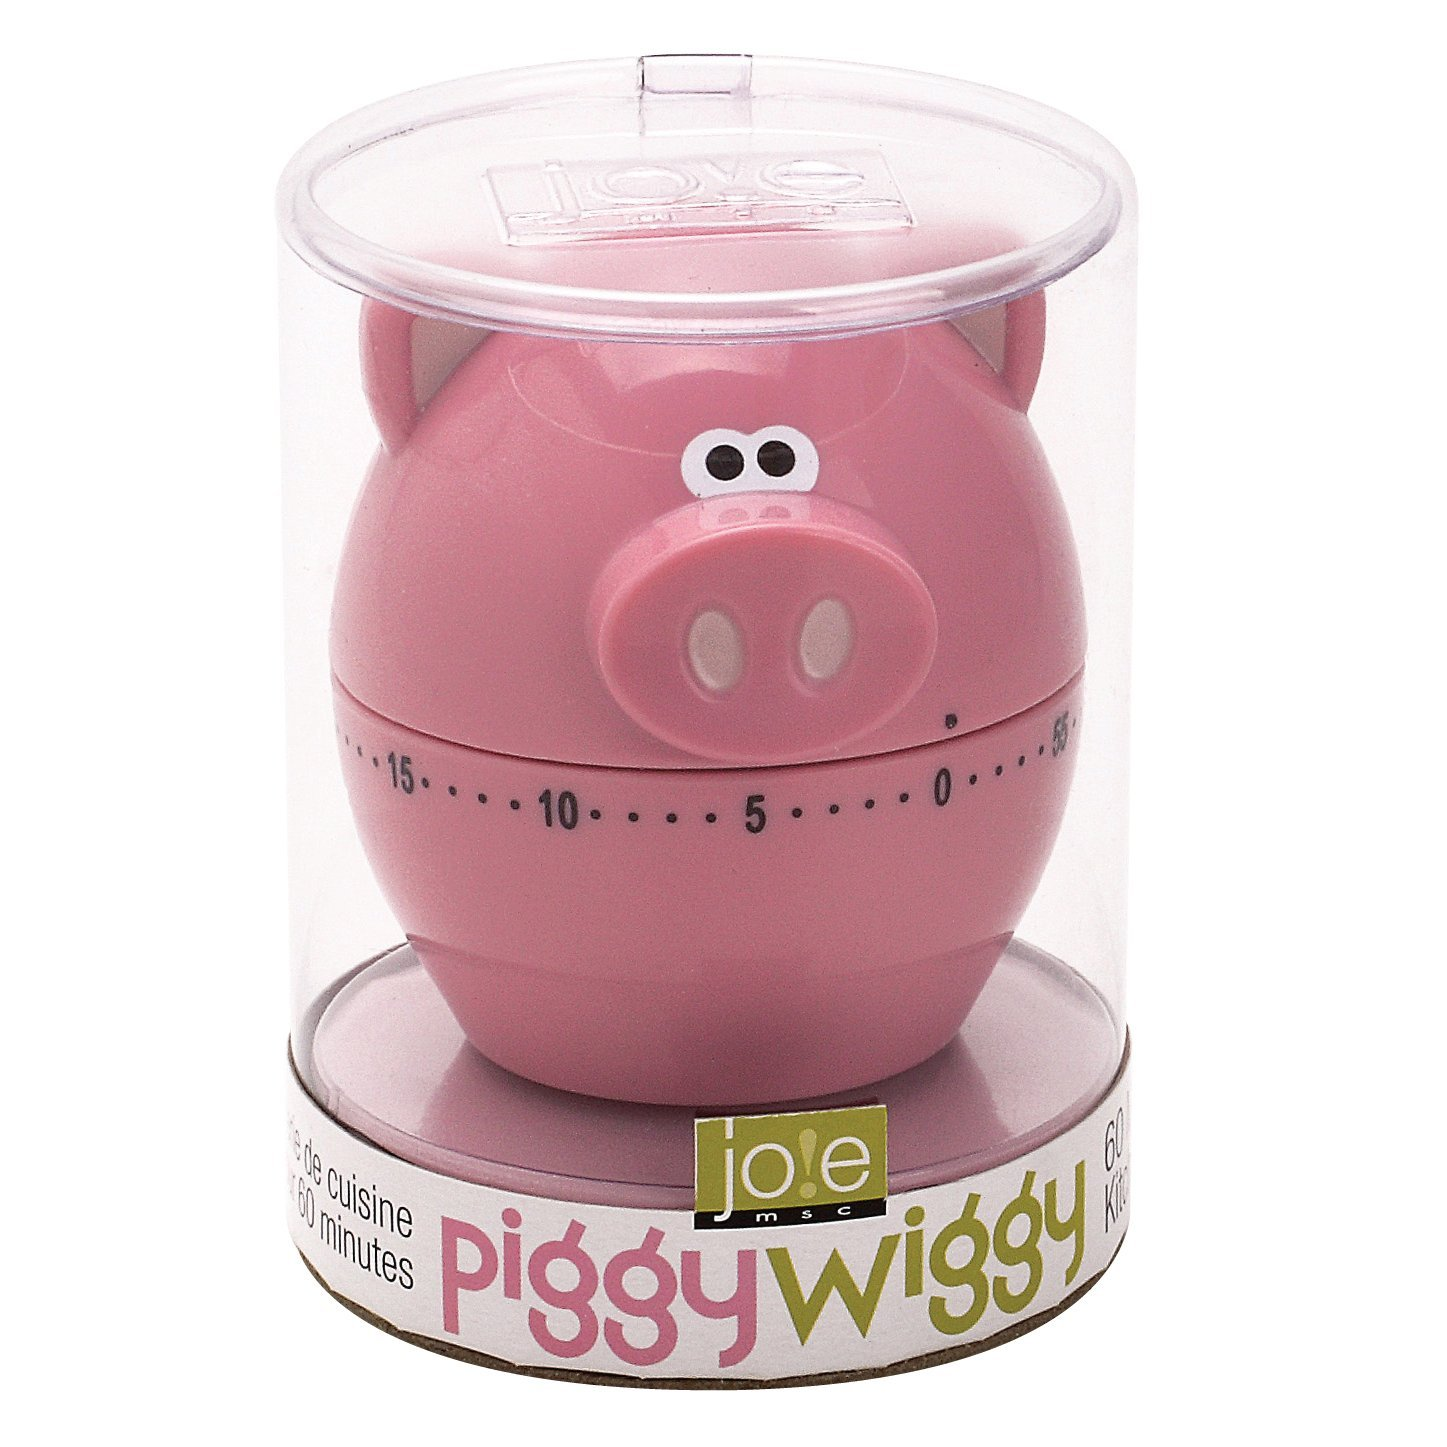 Joie Piggy Wiggy 60 Minute Pig Kitchen Timer